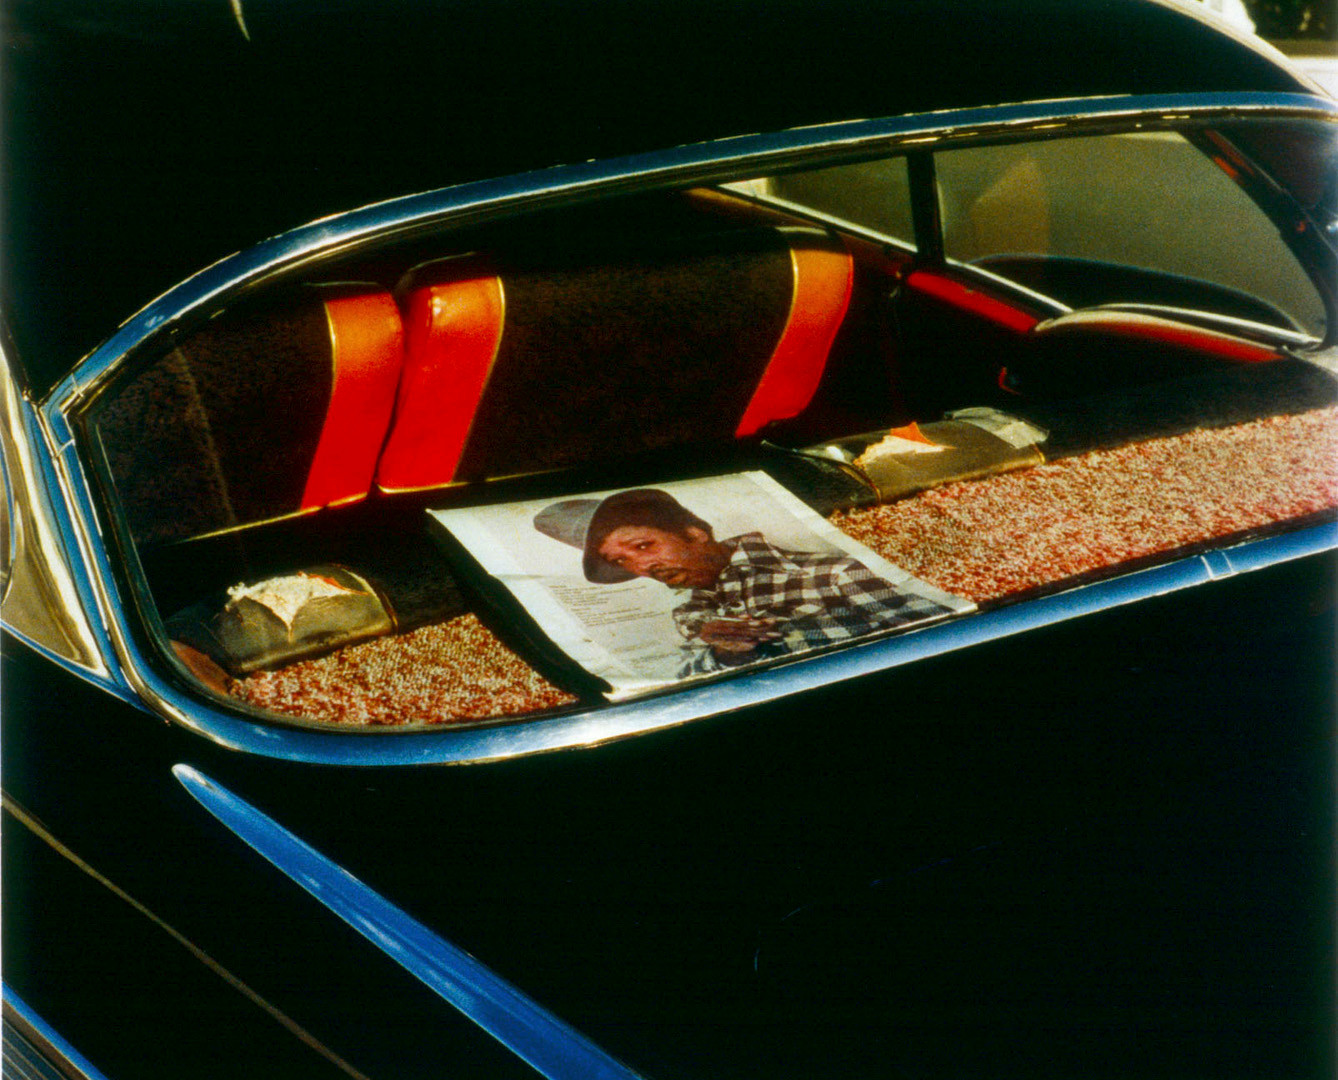 William Eggleston, Untitled (Record Album in Rear Window) Memphis, TN [From Dust Bells 2], c. 1971-74